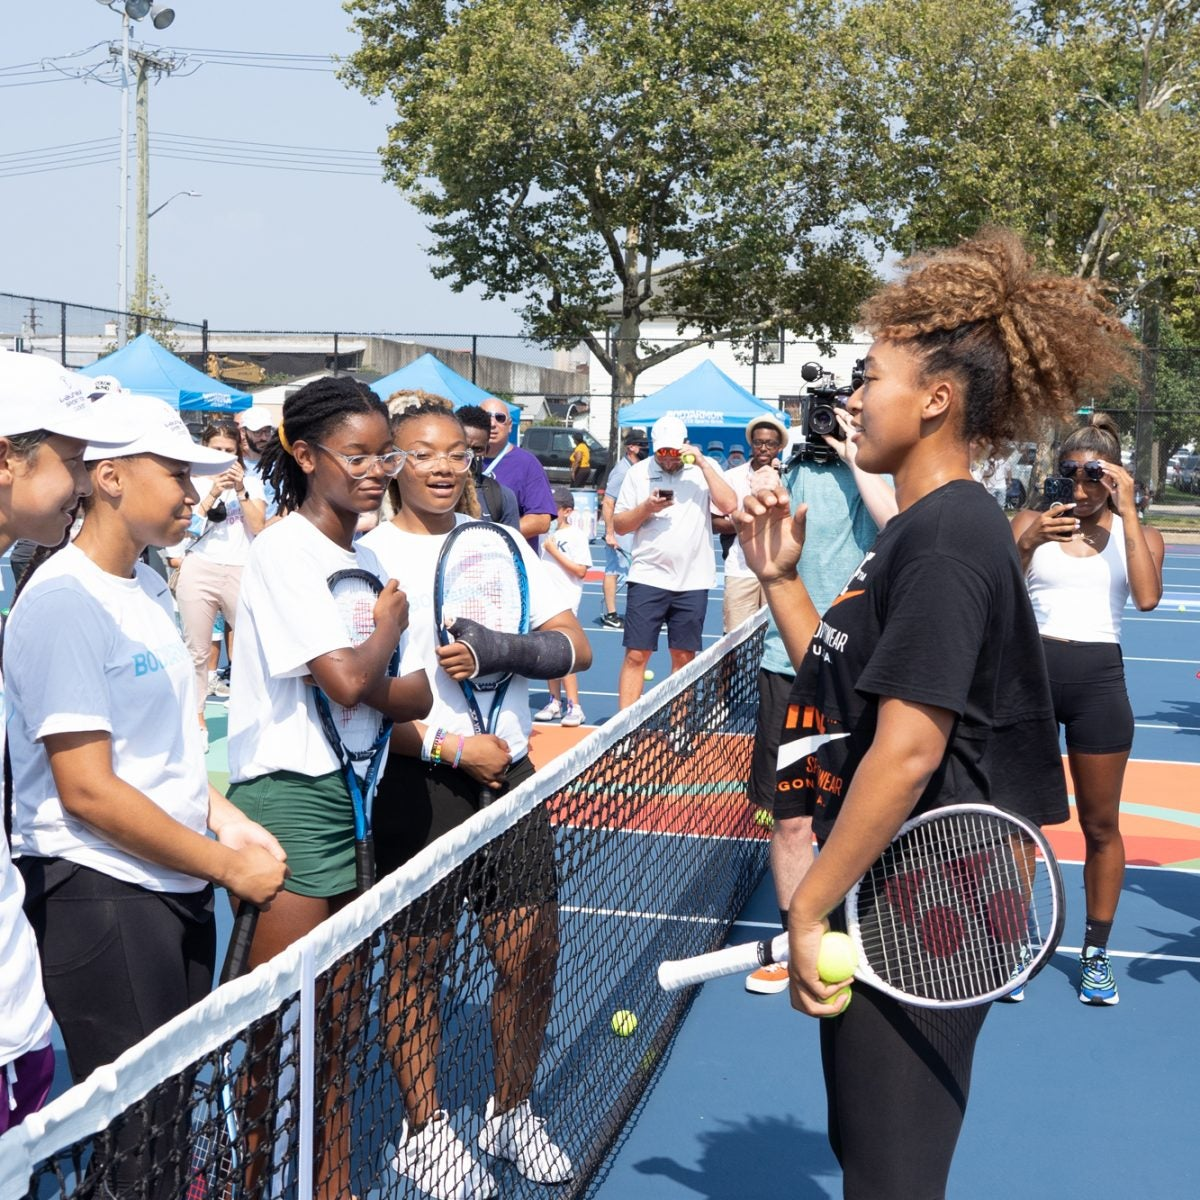 Naomi Osaka Returns To Childhood Courts To Play With The Next Generation Of Tennis Stars